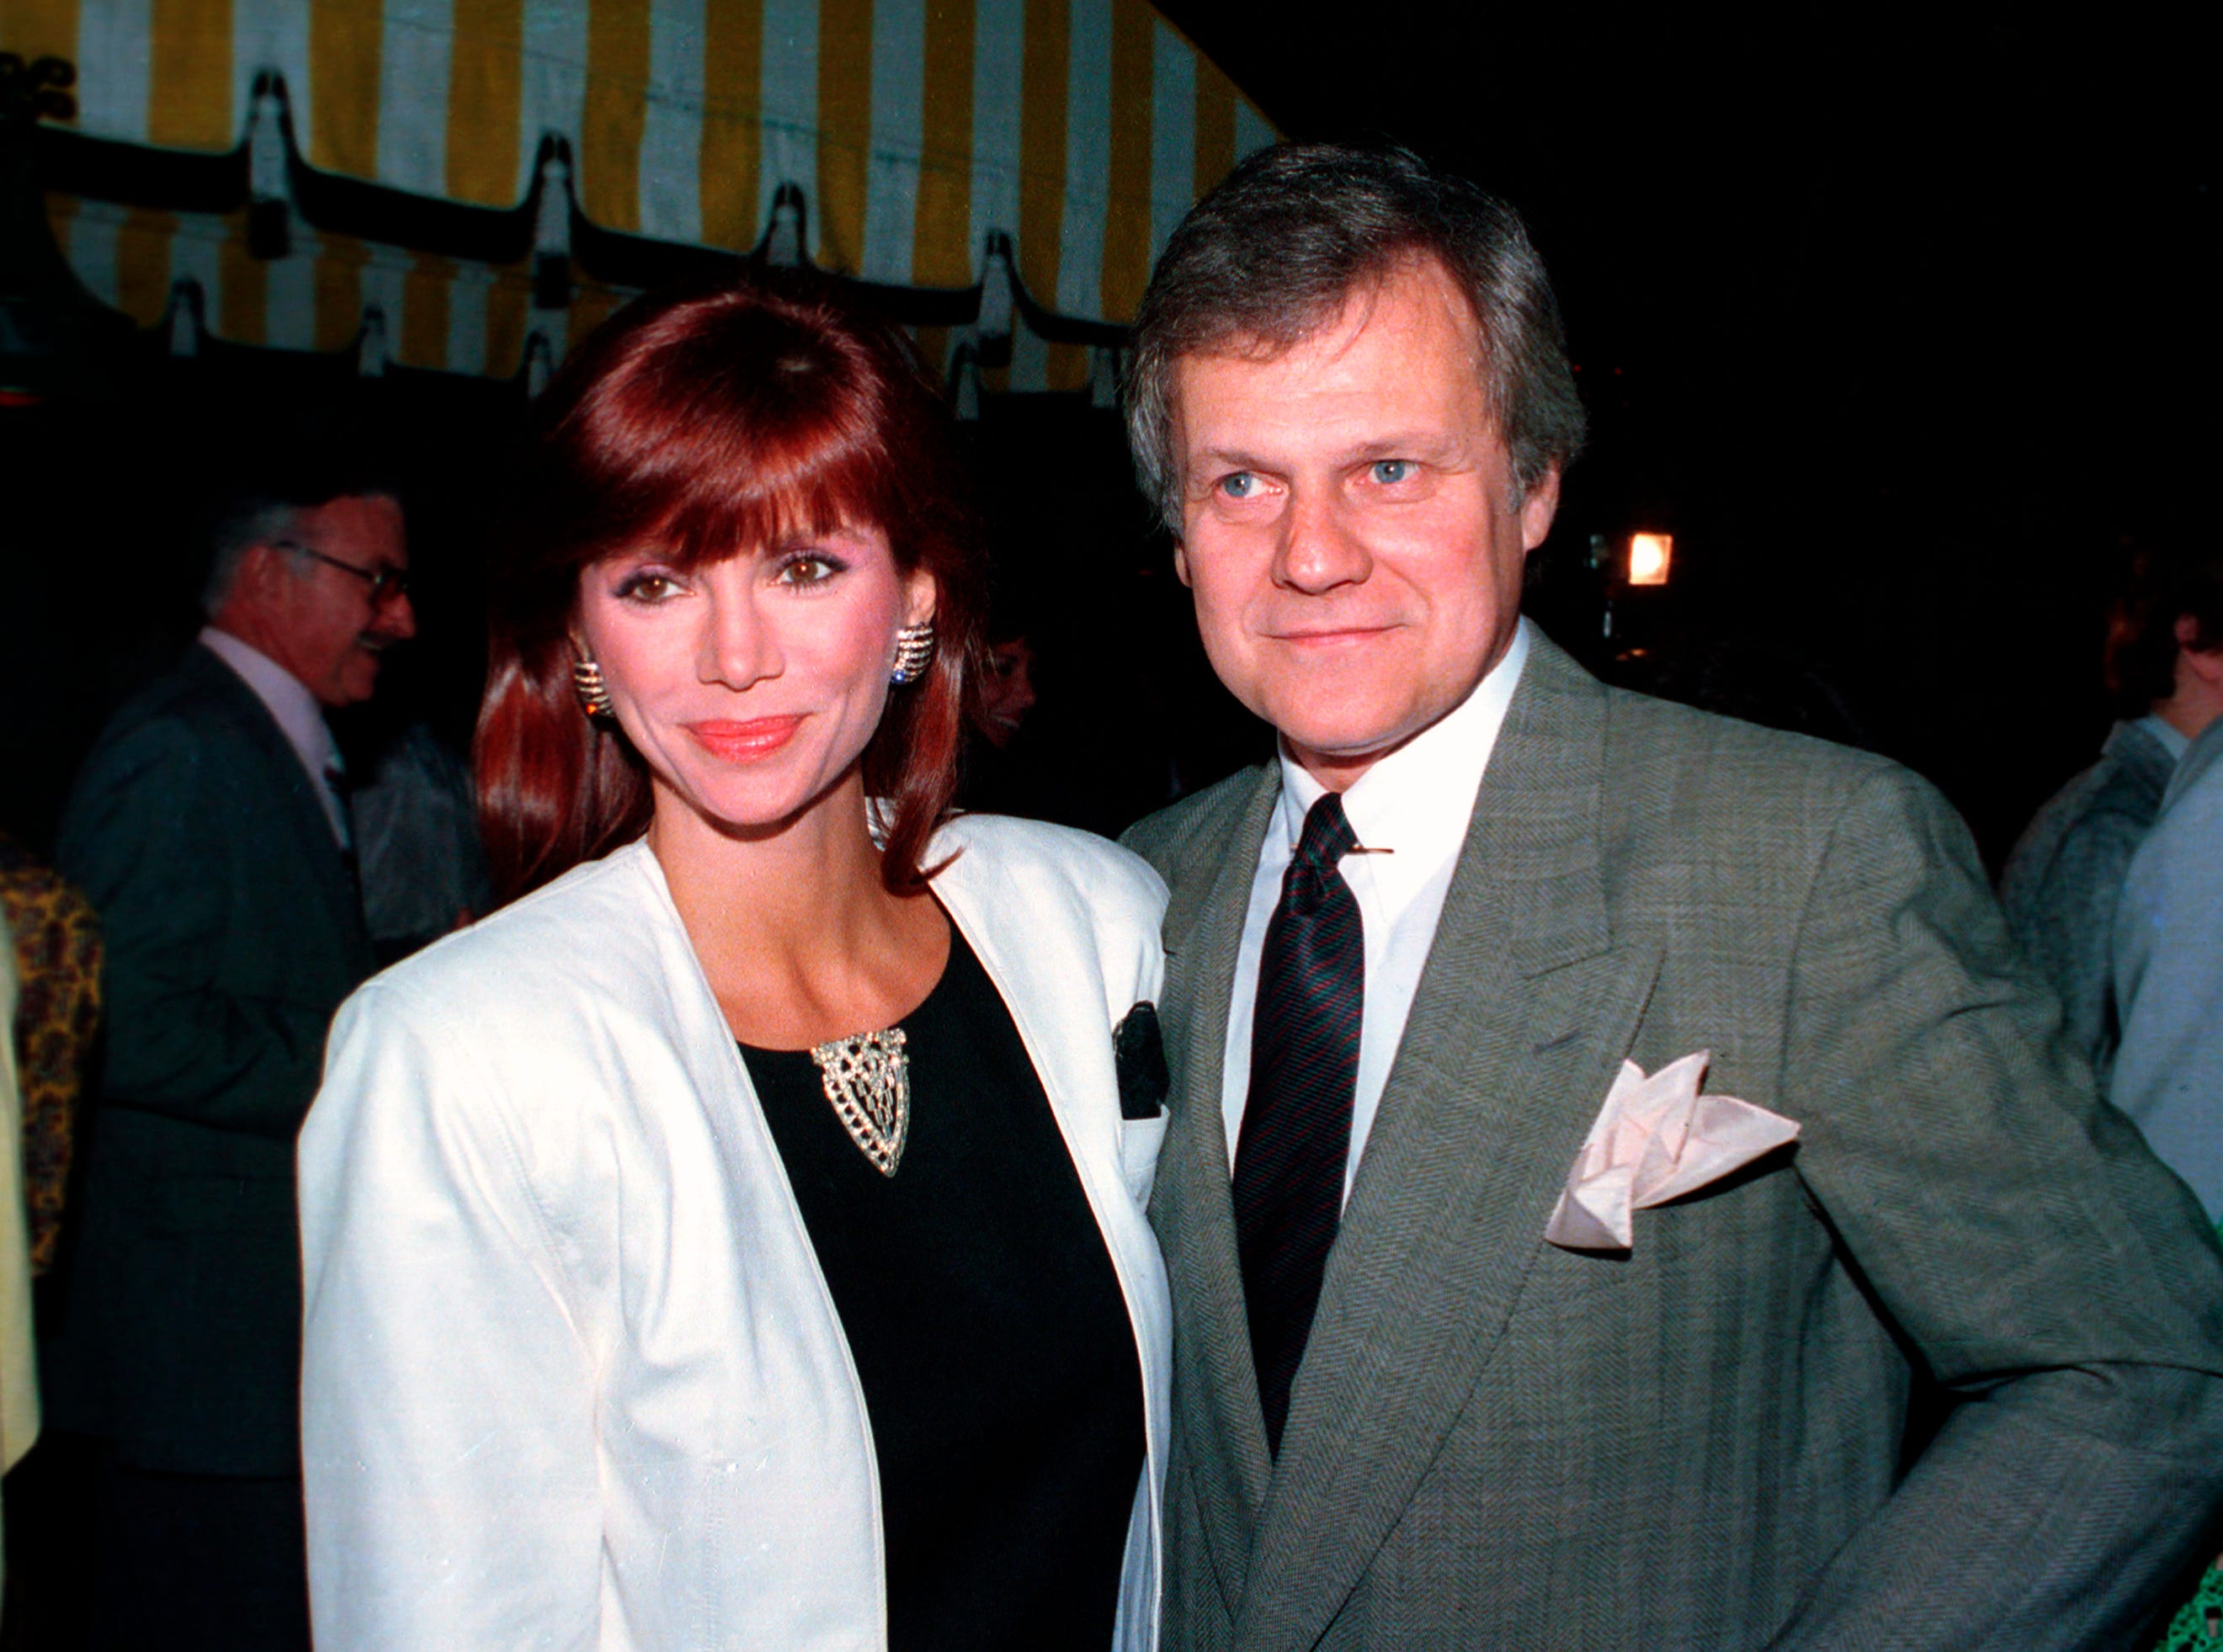 """This June 13, 1986 file photo shows actress Victoria Principal, left, and actor Ken Kercheval, co-stars of the popular TV-show """"Dallas."""" Kercheval, who played Cliff Barnes on the hit TV series """"Dallas"""" has died at age 83. Agent Jeff Fisher said Kercheval died Easter Sunday in Clinton, Ind."""